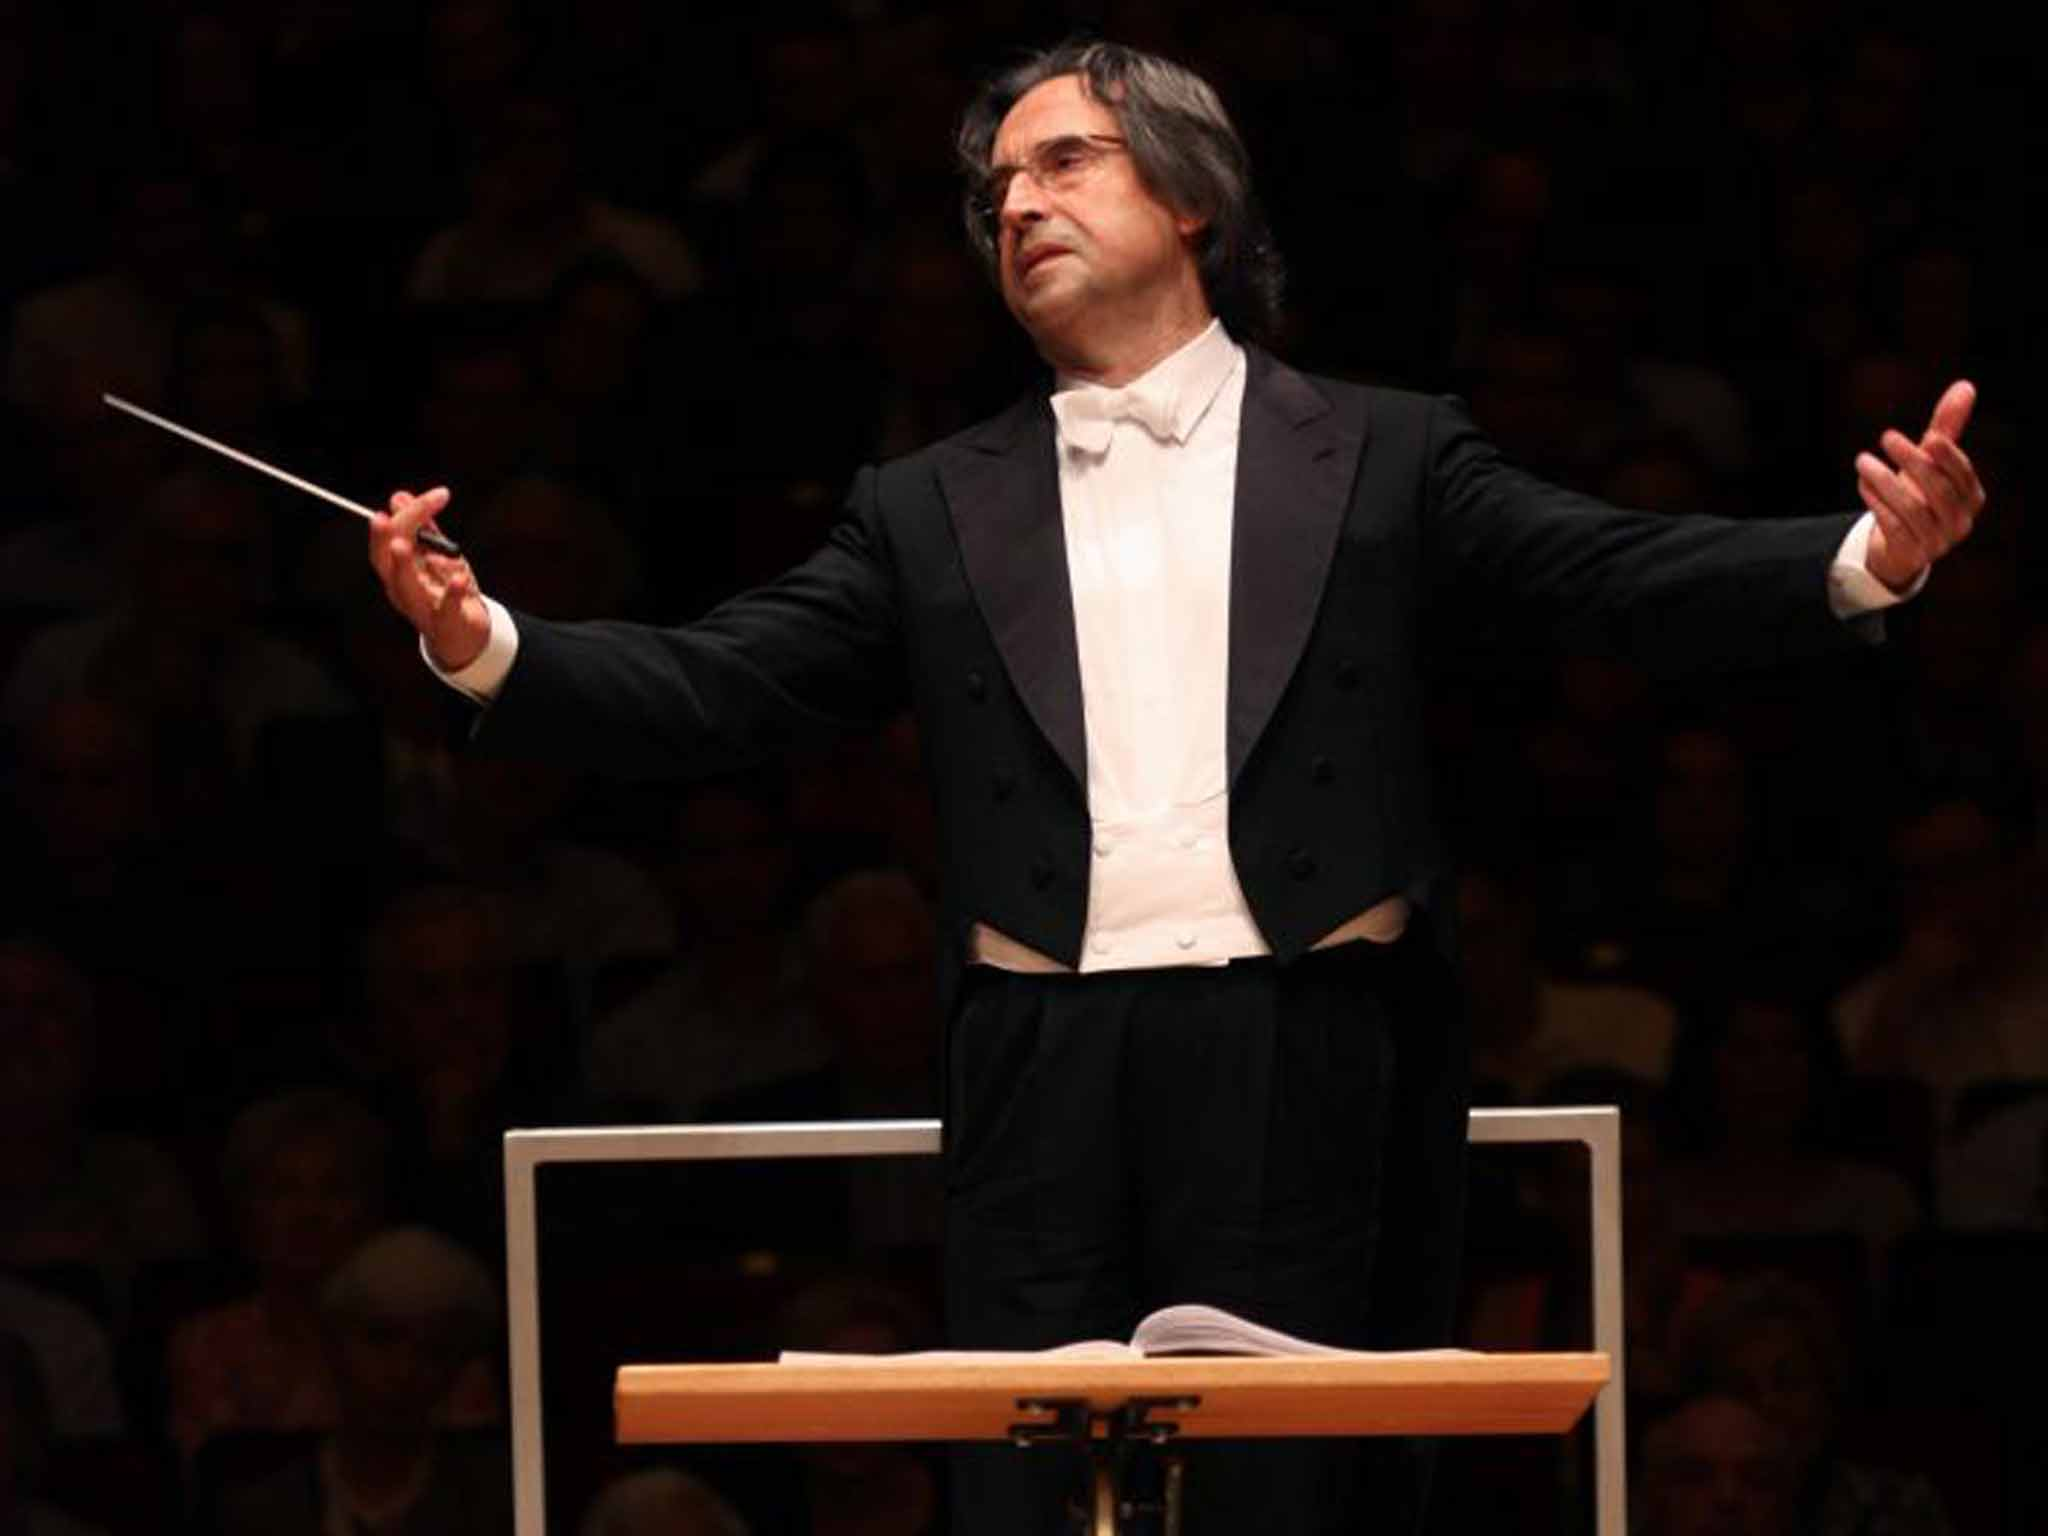 Riccardo Muti's resignation: Does Italy have an opera problem? | The ...